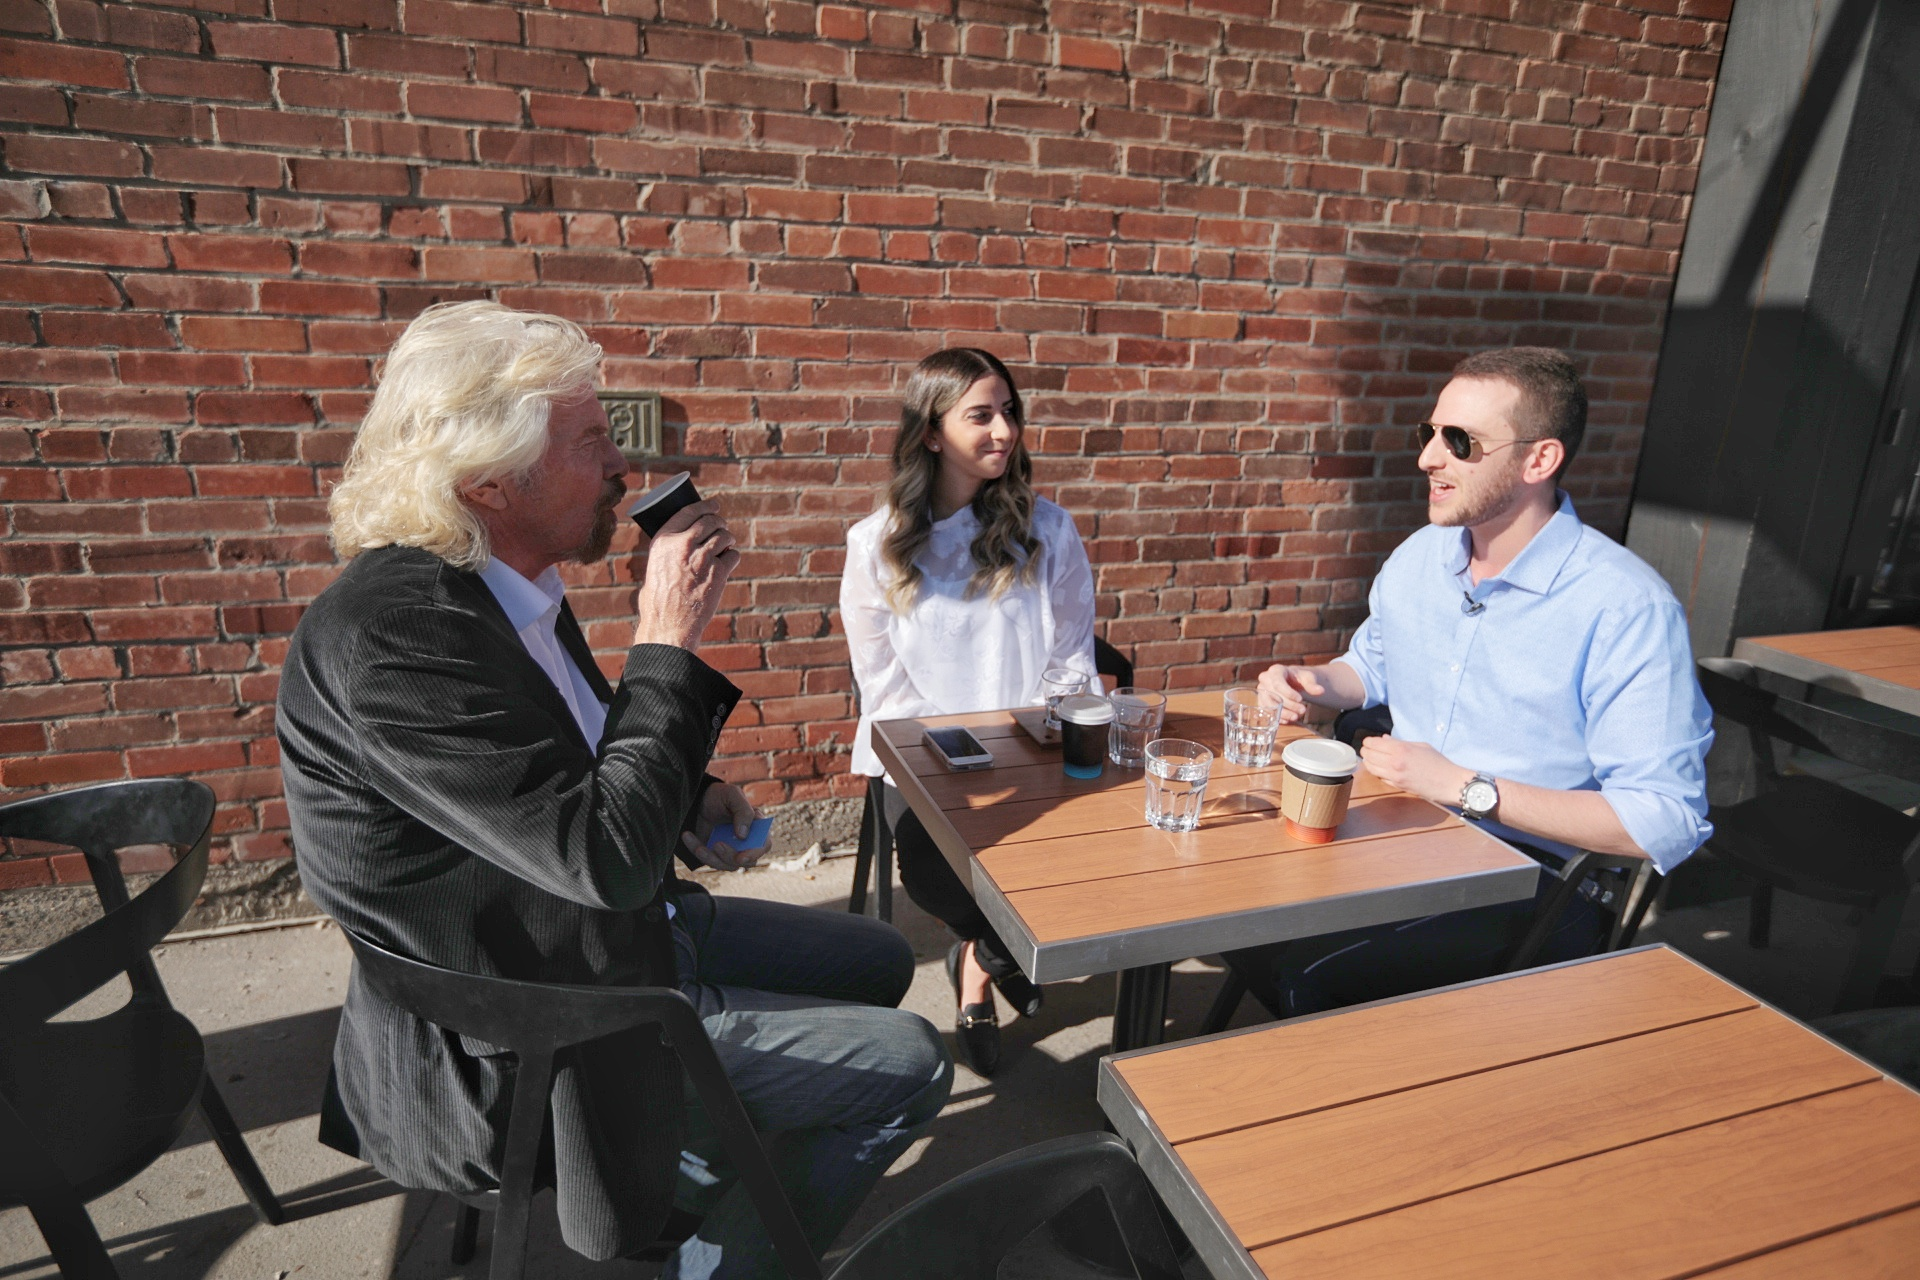 Richard branson sits with Swob's Stephanie and Alexander in Calgary.